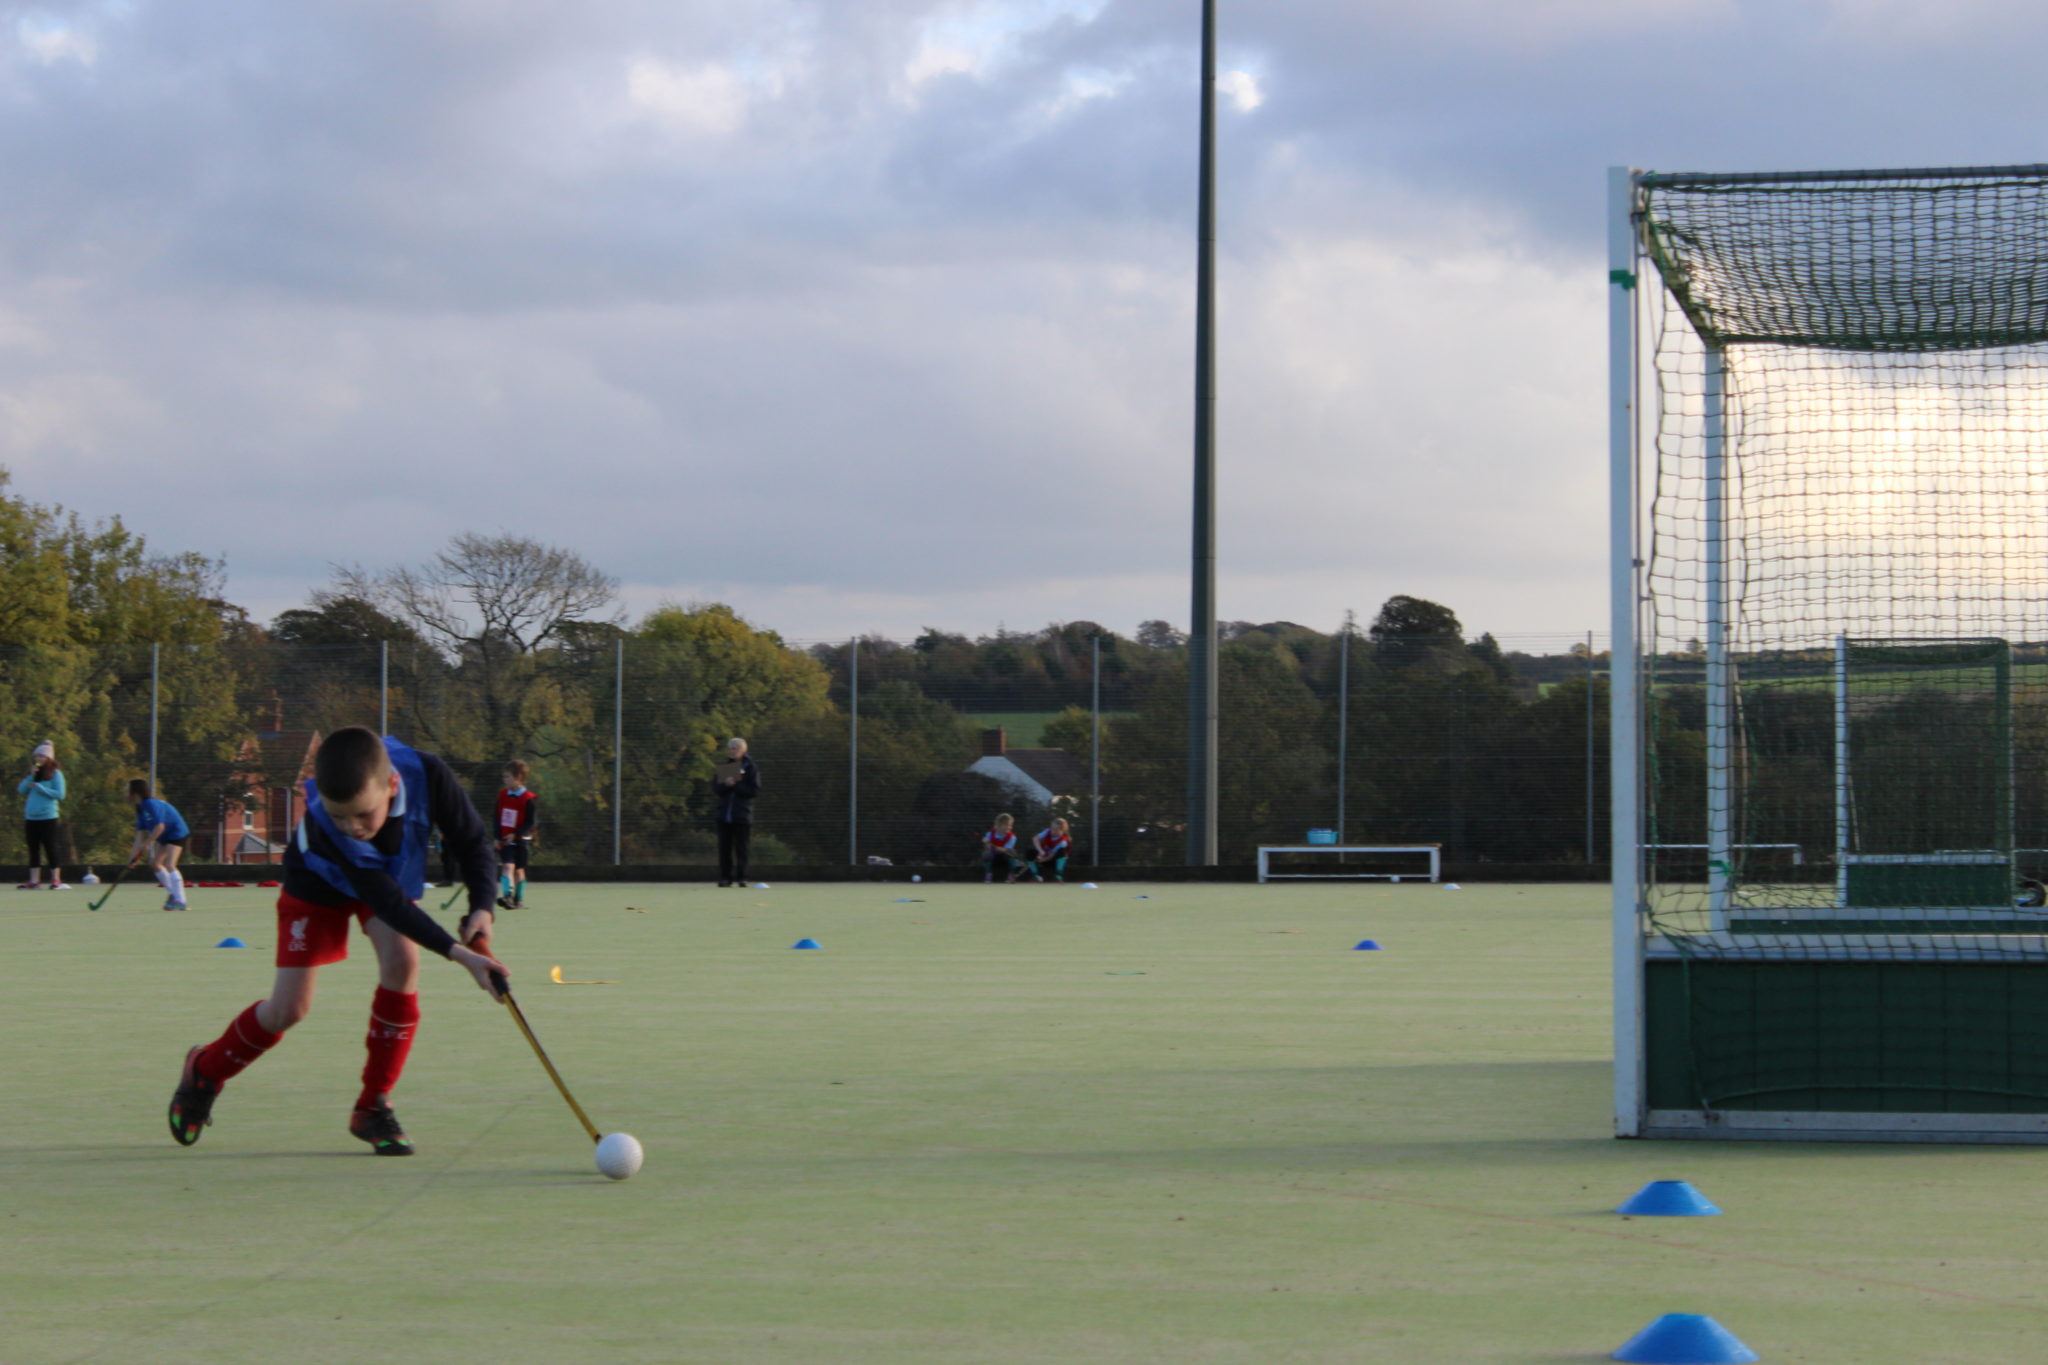 Outdoor Sports Arena In Louth London Road Pavilion Magna Vitae